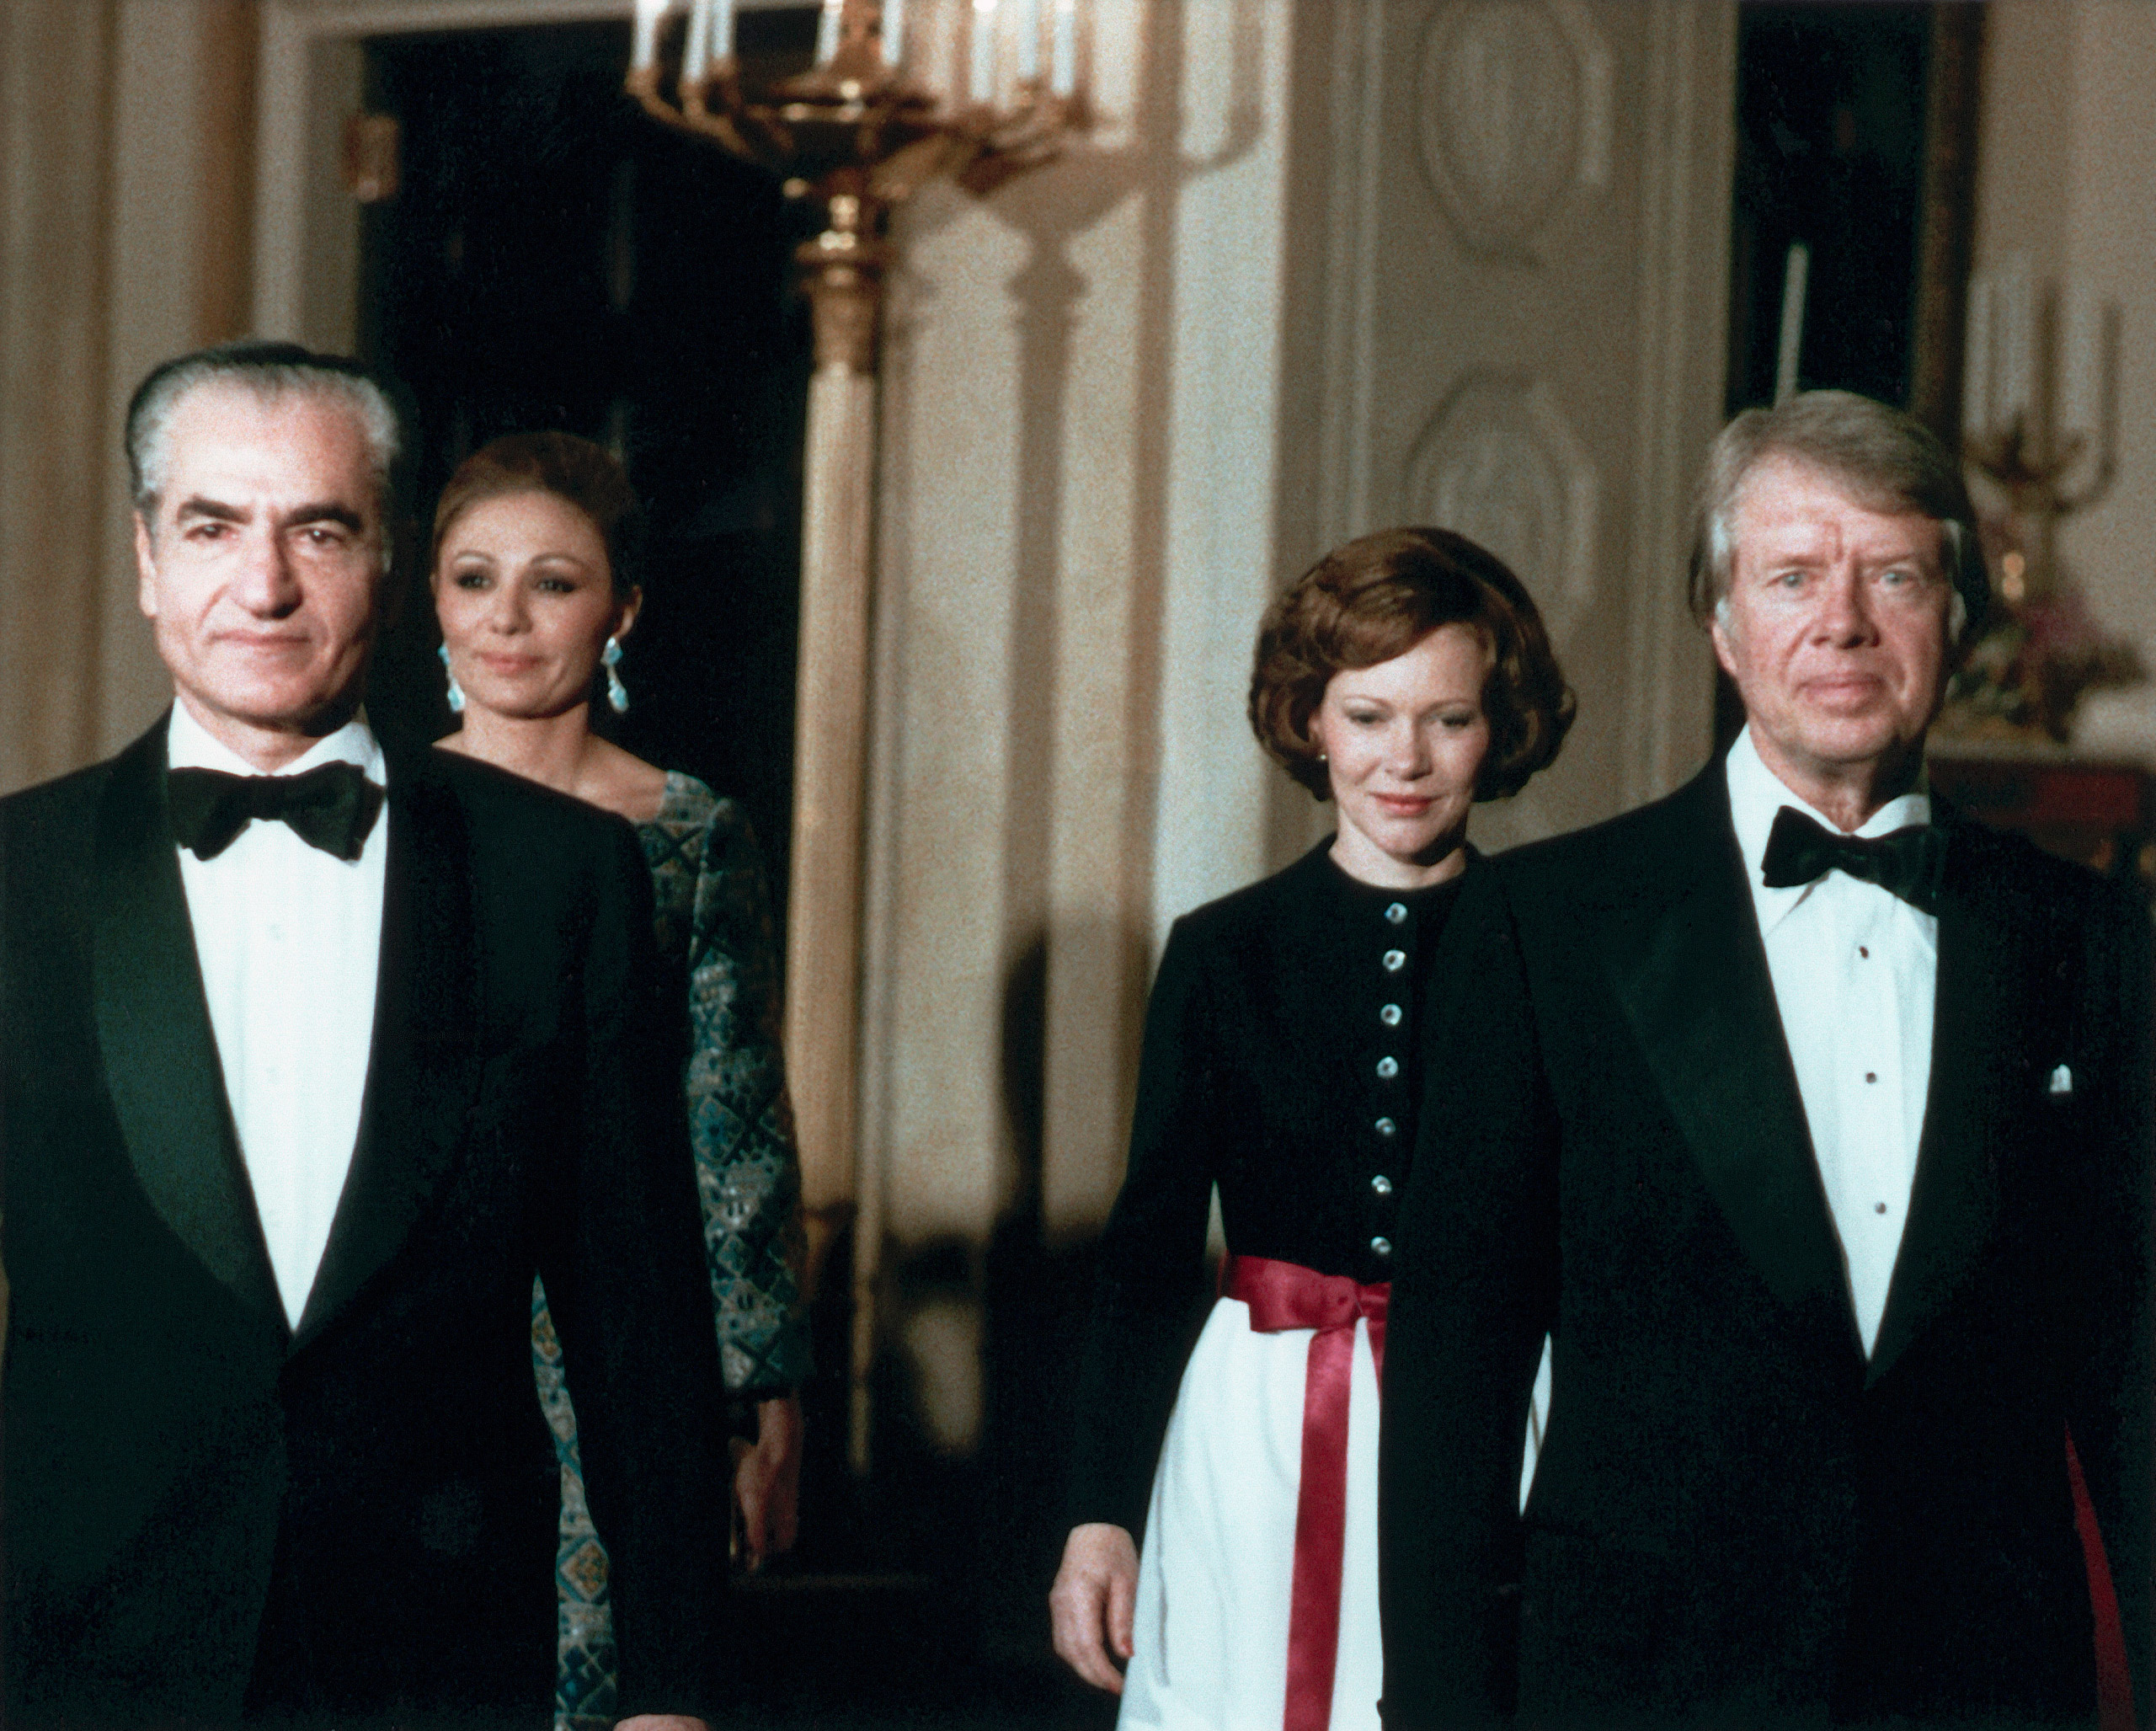 President Carter and wife Rosalynn escort the Shah and Shahbanou of Iran to a state dinner in the White House, 1977.